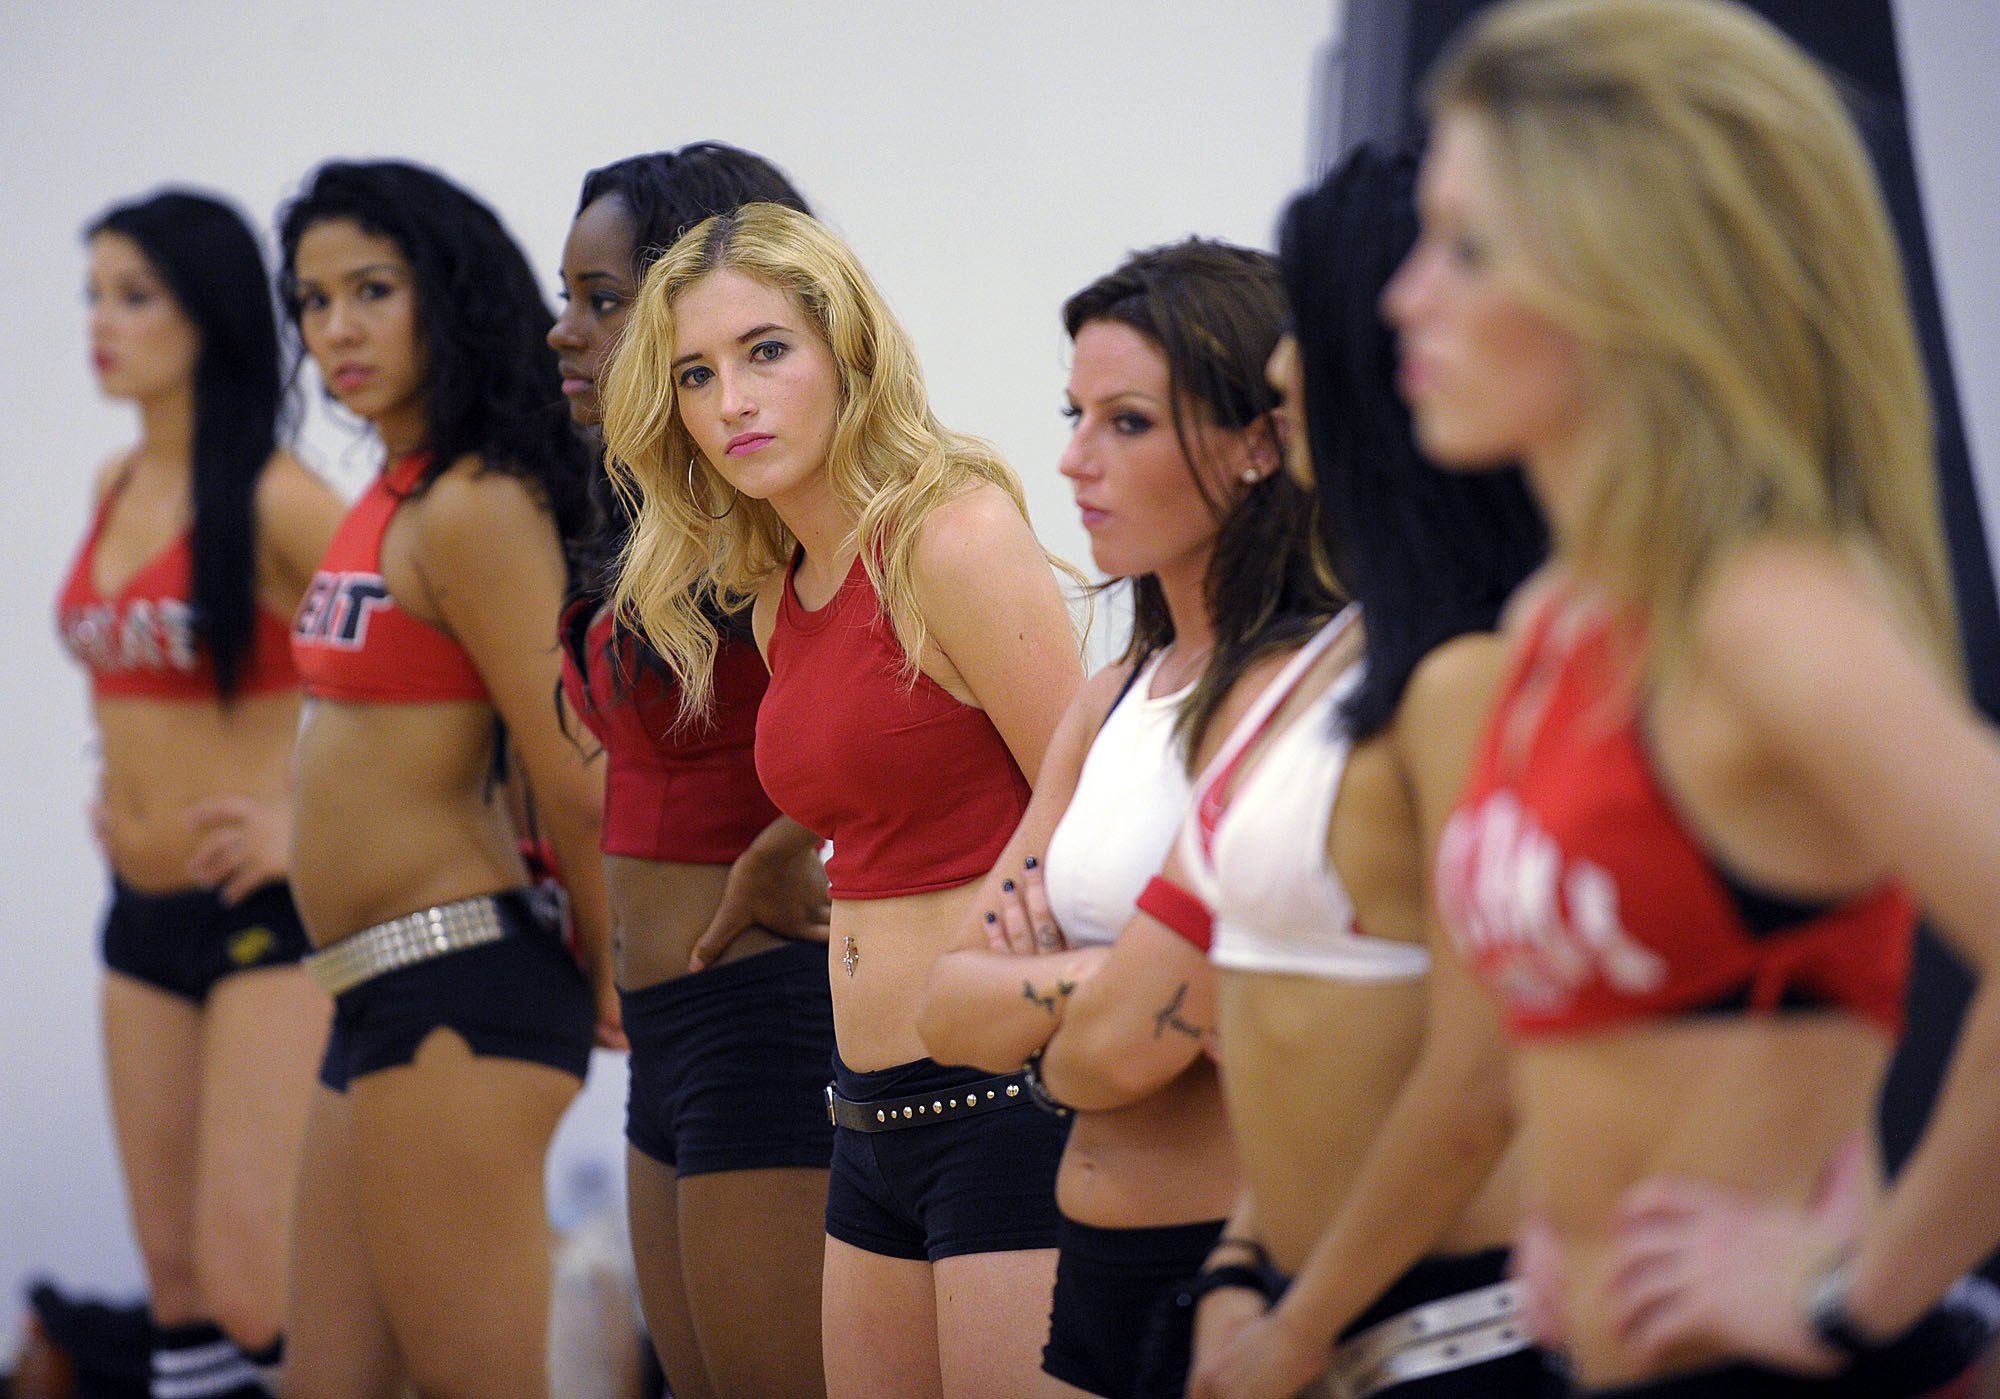 Heat Dance Team Selected - Boot Camp